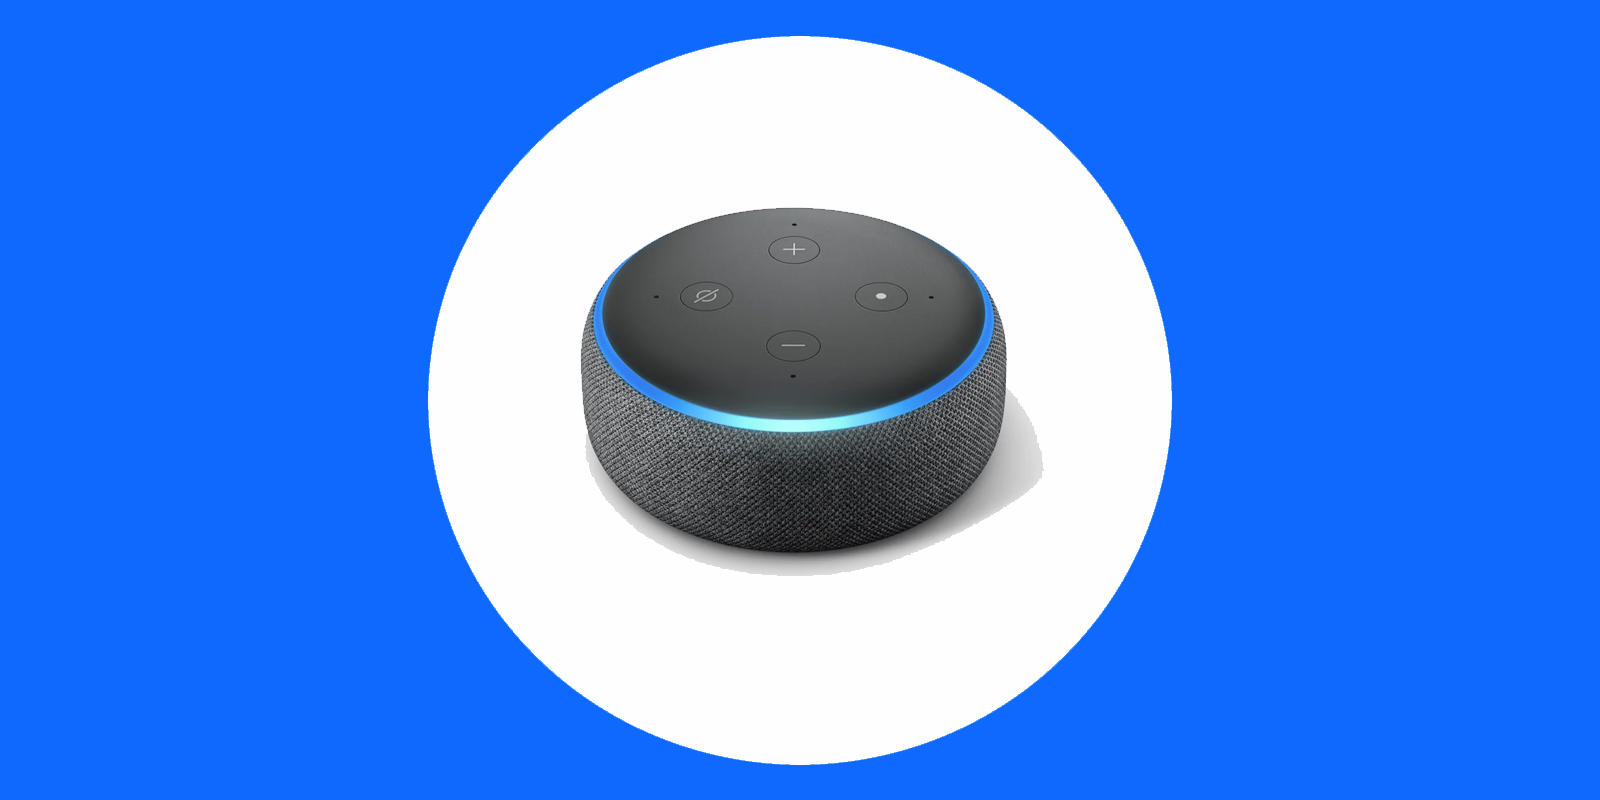 Save 30% on Amazon's Echo Dot